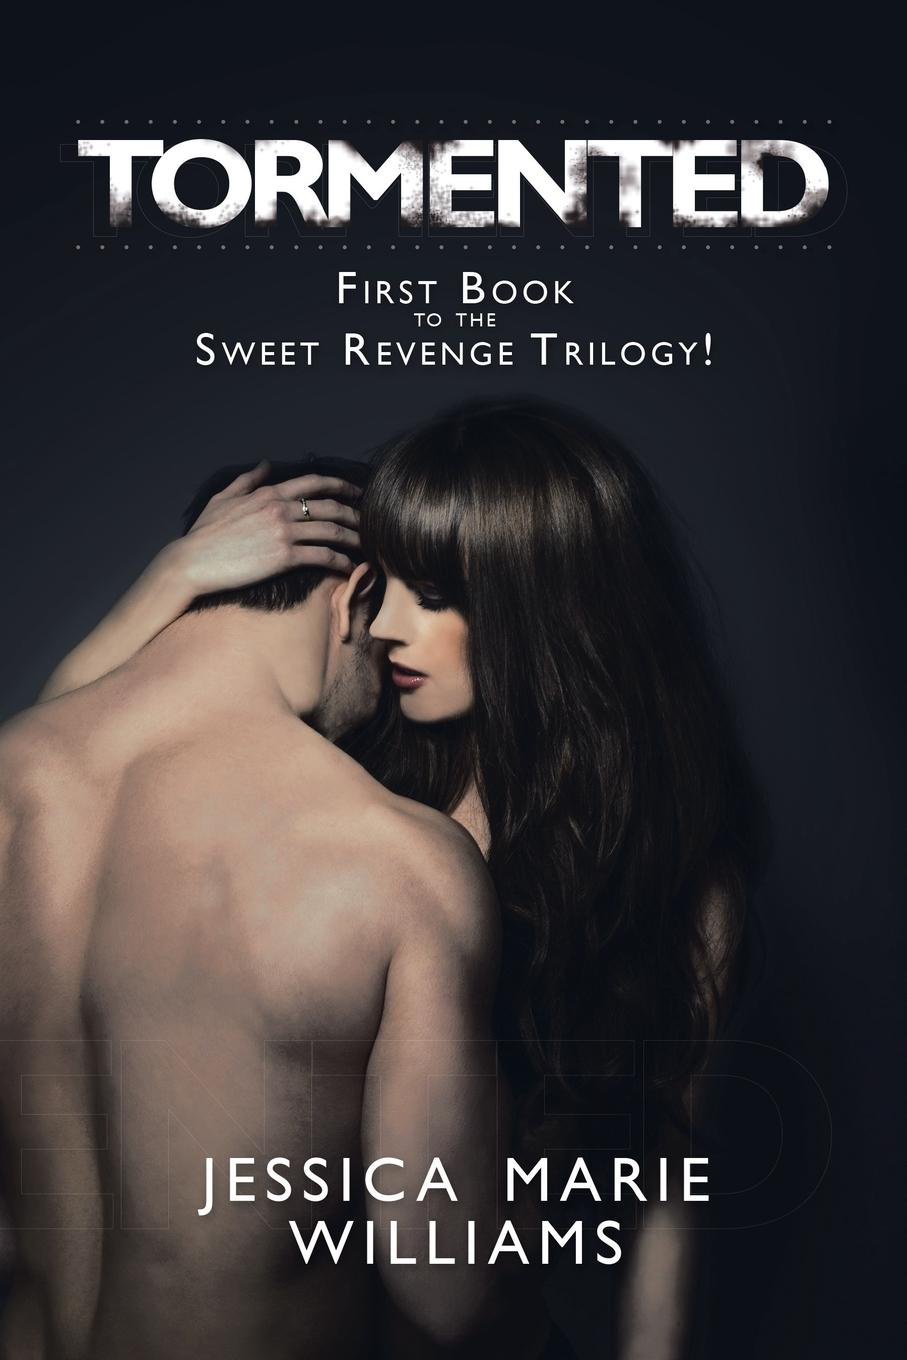 Jessica Marie Williams TORMENTED. First Book to the Sweet Revenge Trilogy! our first book